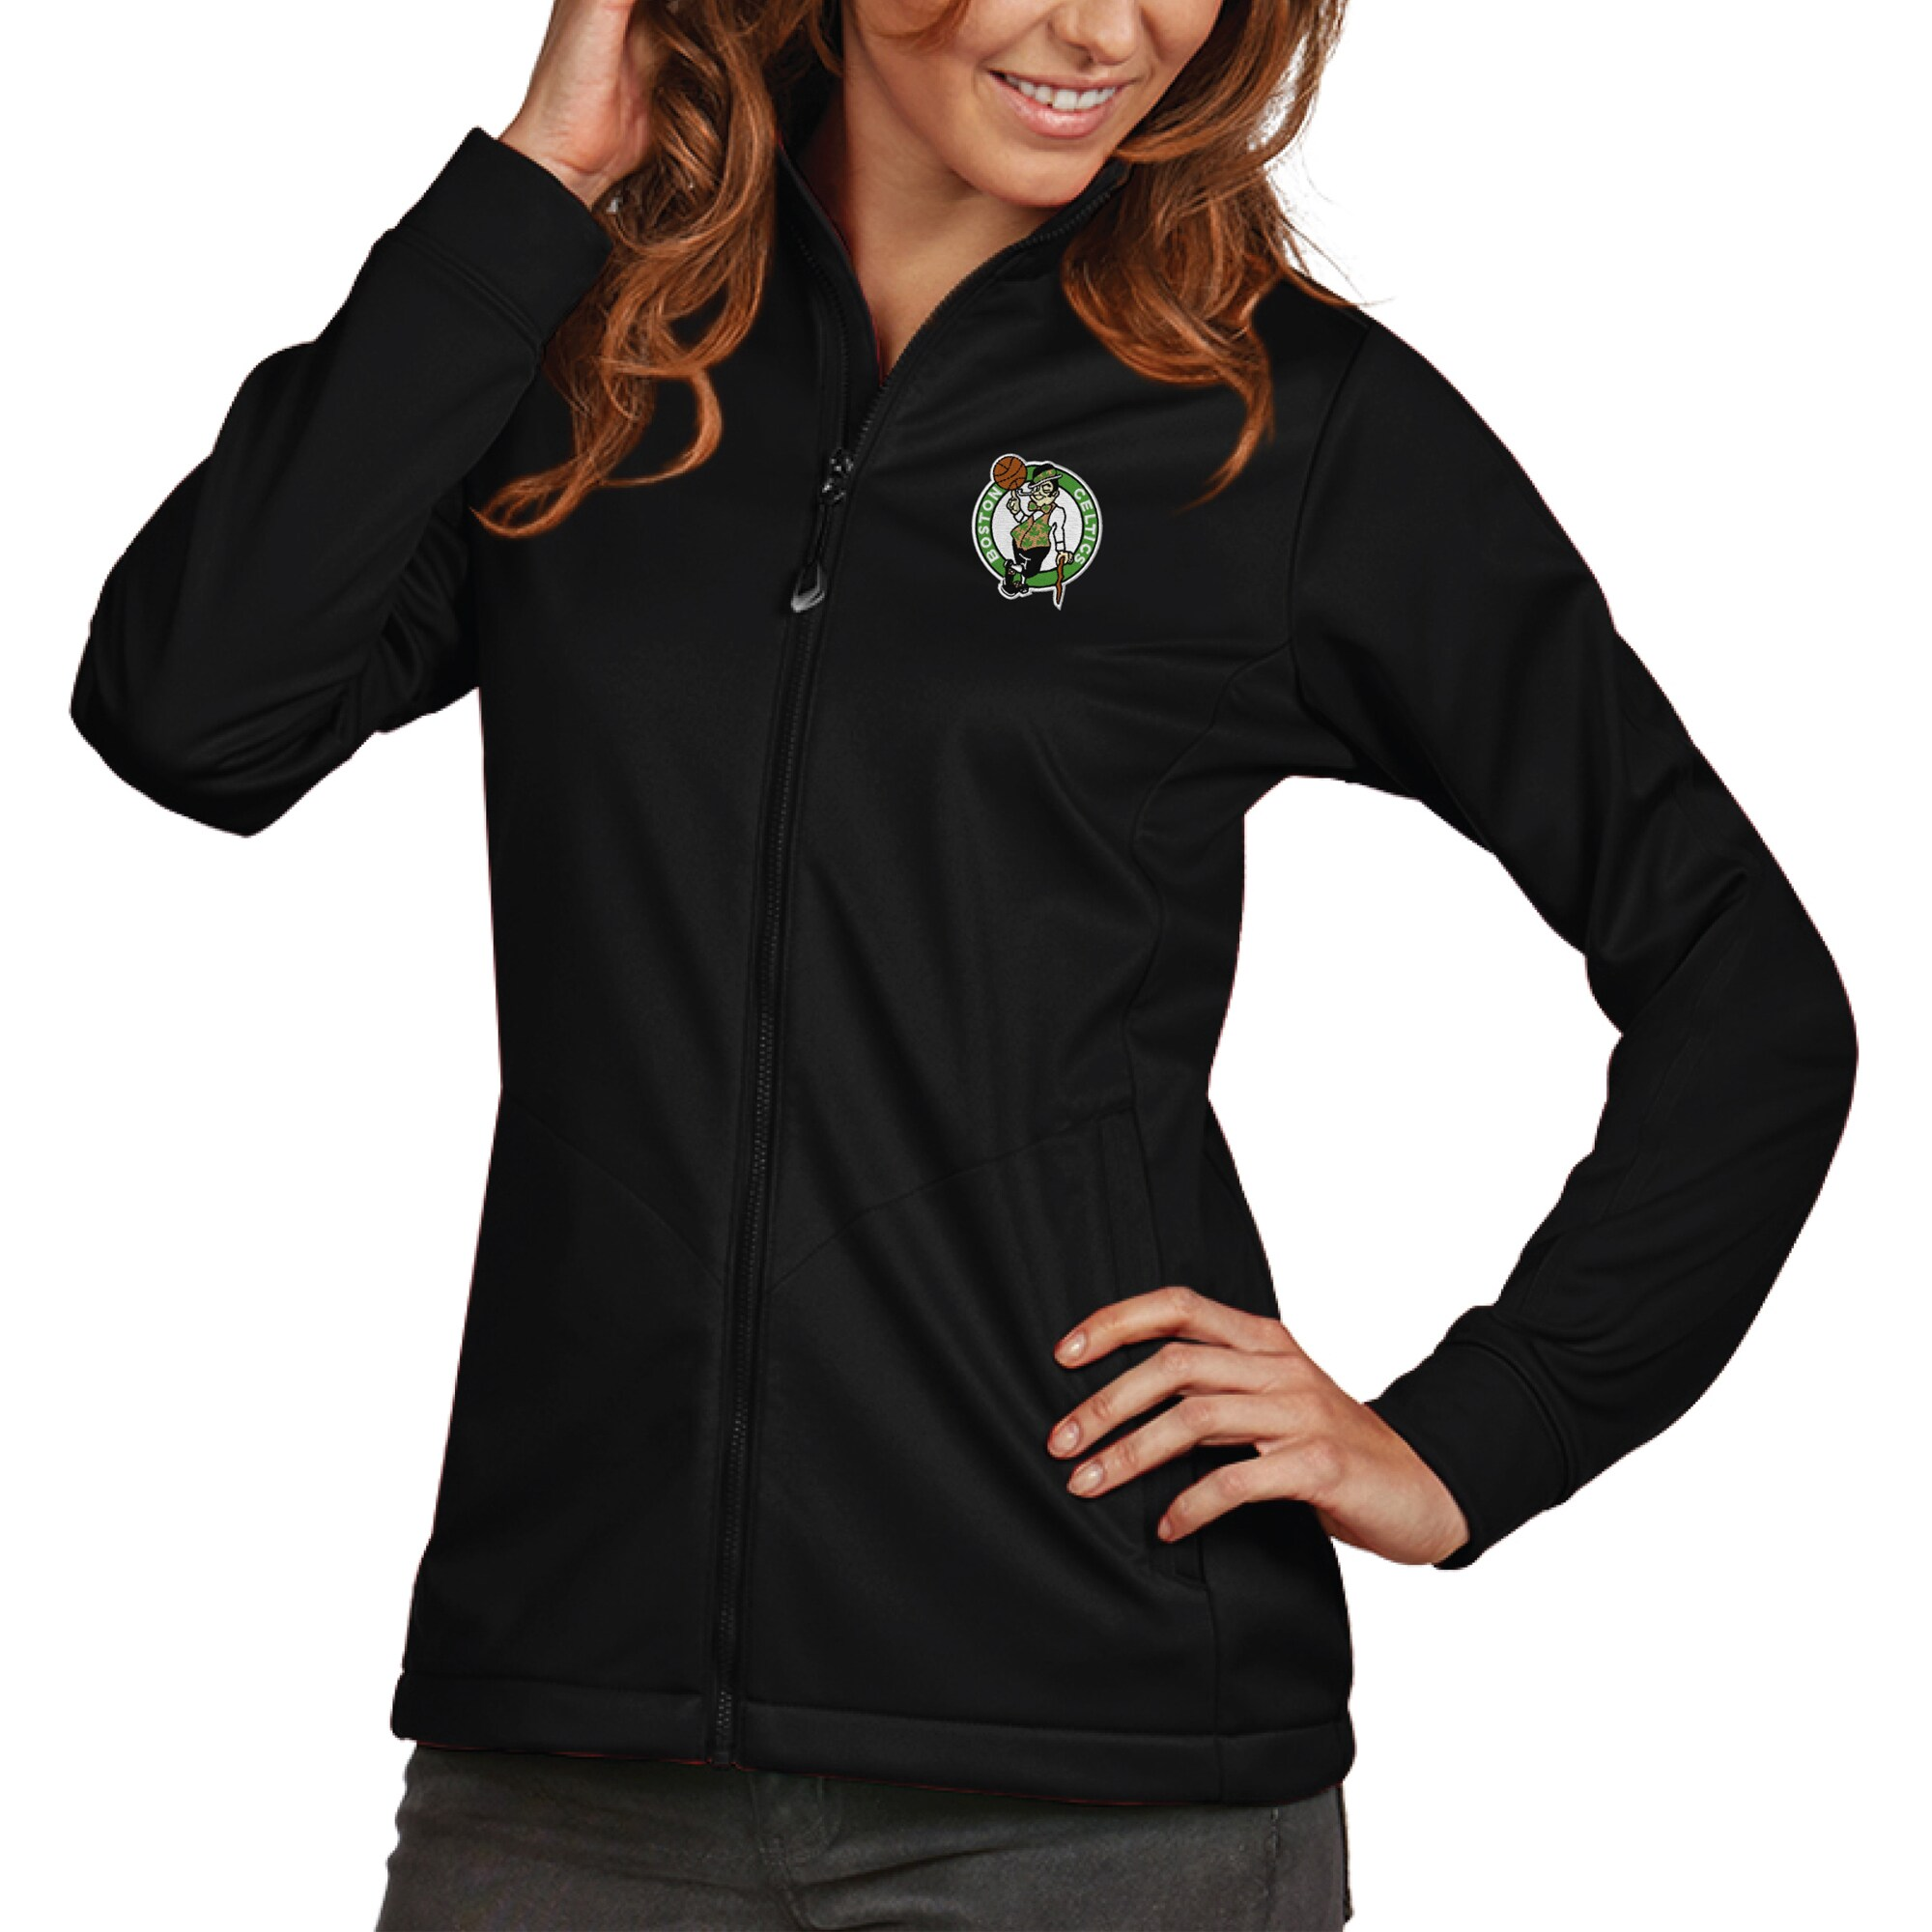 Boston Celtics Antigua Women's Golf Full-Zip Jacket - Black